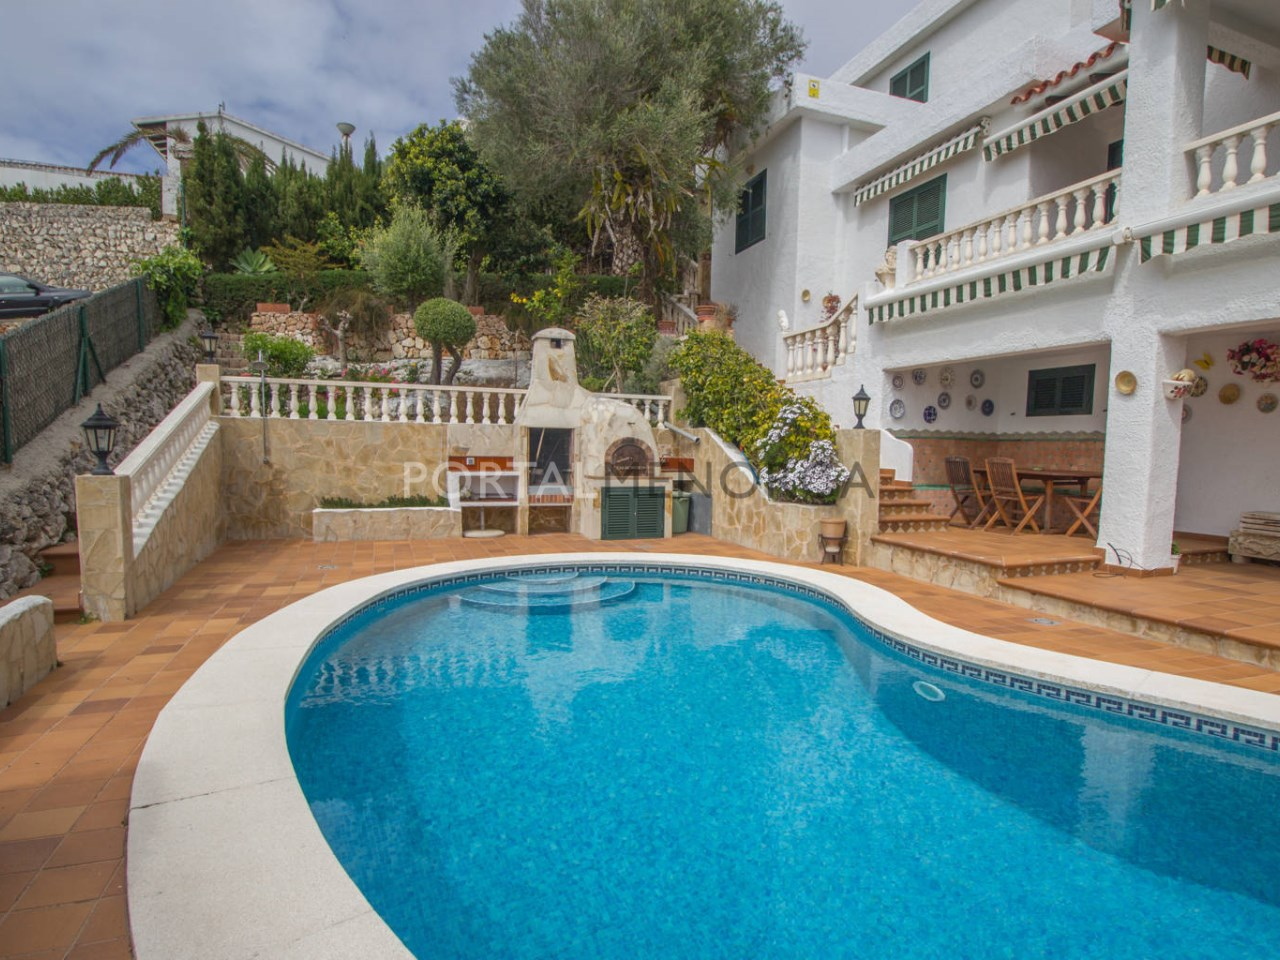 Villa for sale in Binibeca with swimming pool\n